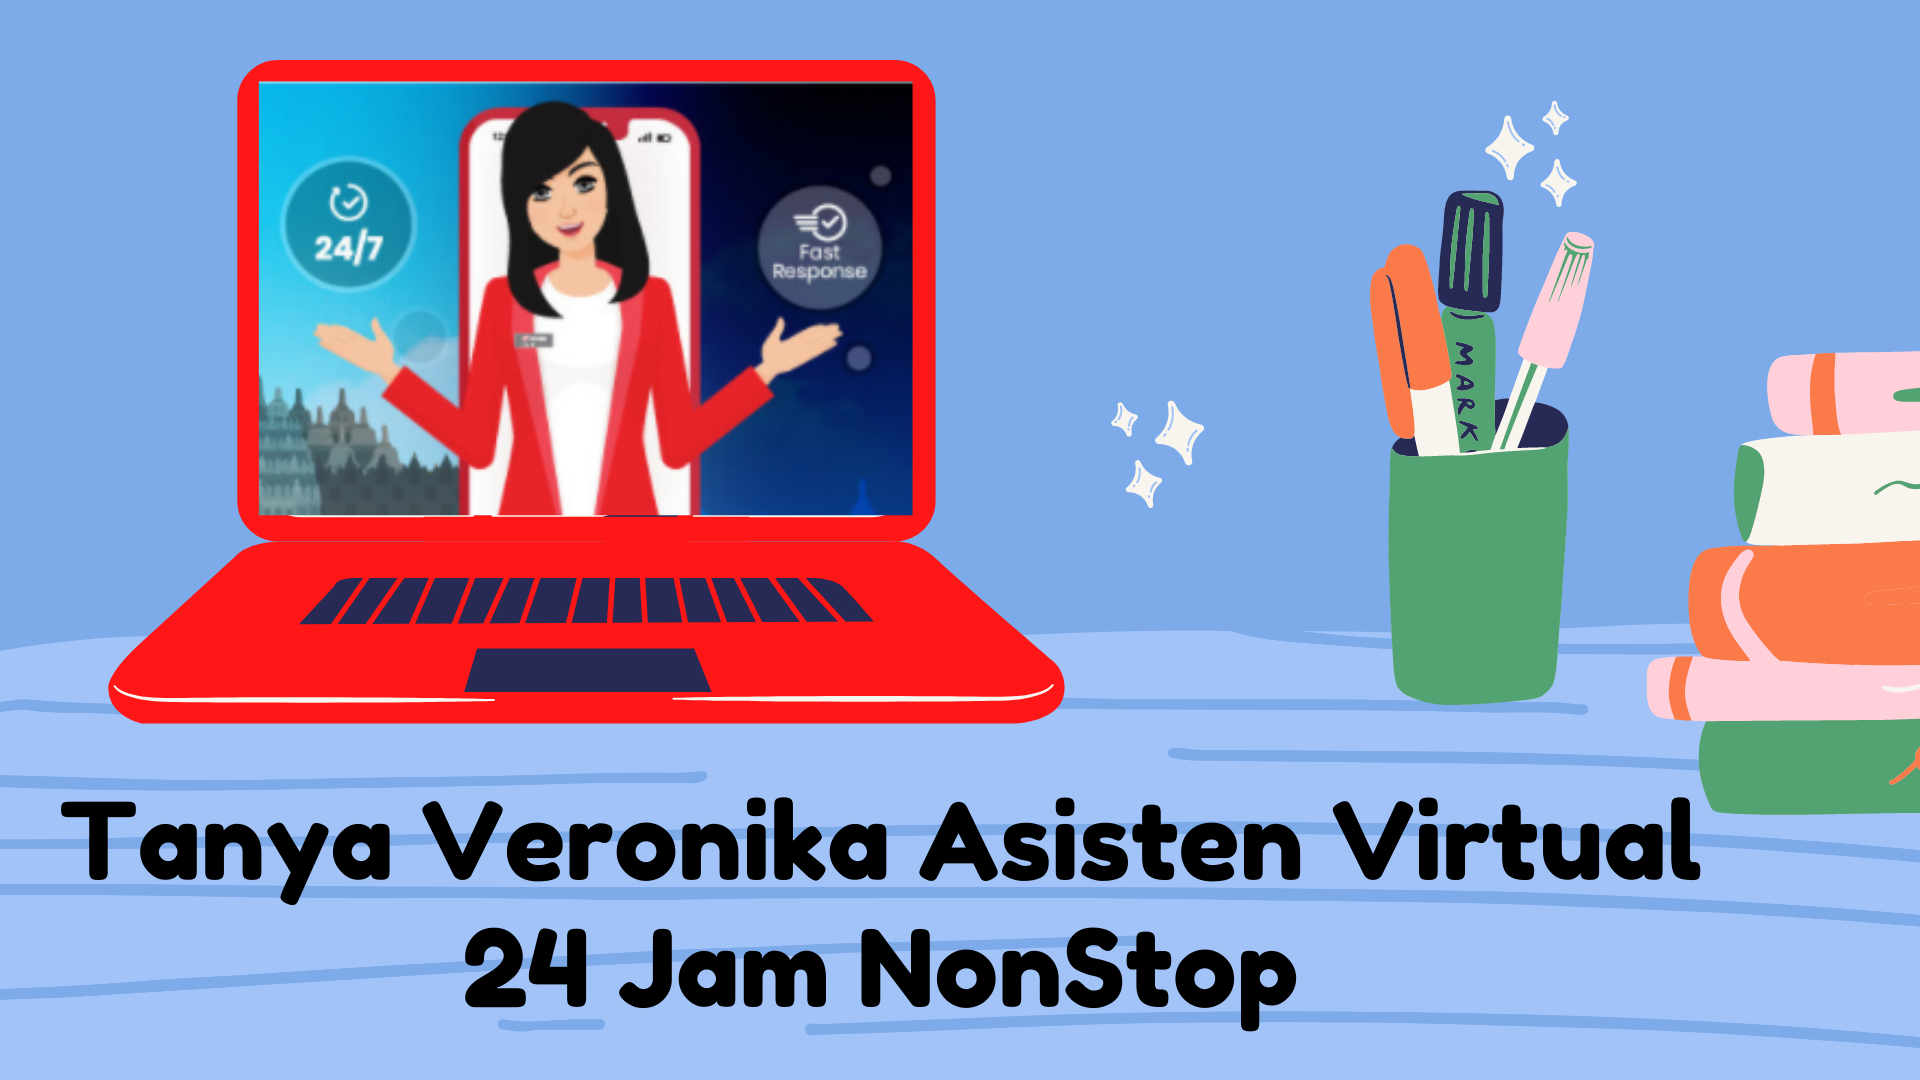 Veronika Asisten Virtual Telkomsel